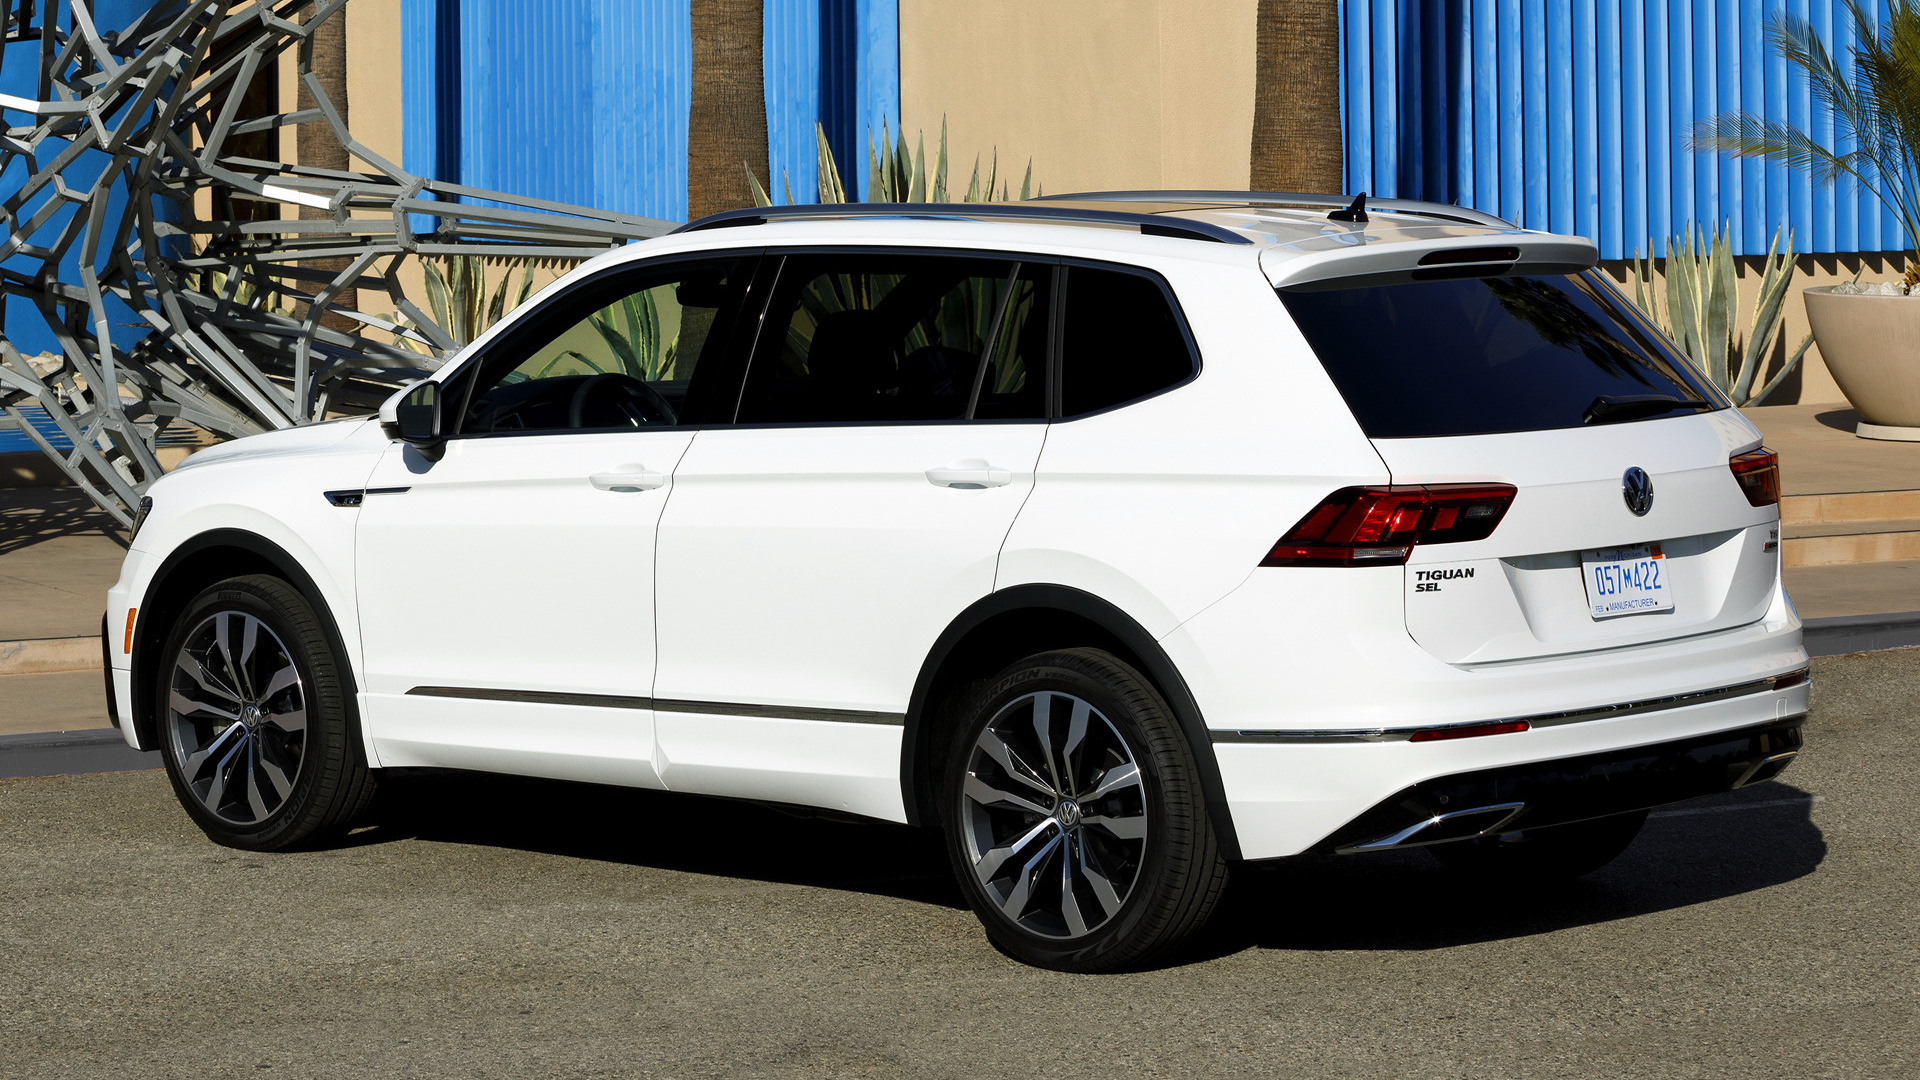 volkswagen tiguan r line lwb 2018 us wallpapers and hd images car pixel. Black Bedroom Furniture Sets. Home Design Ideas